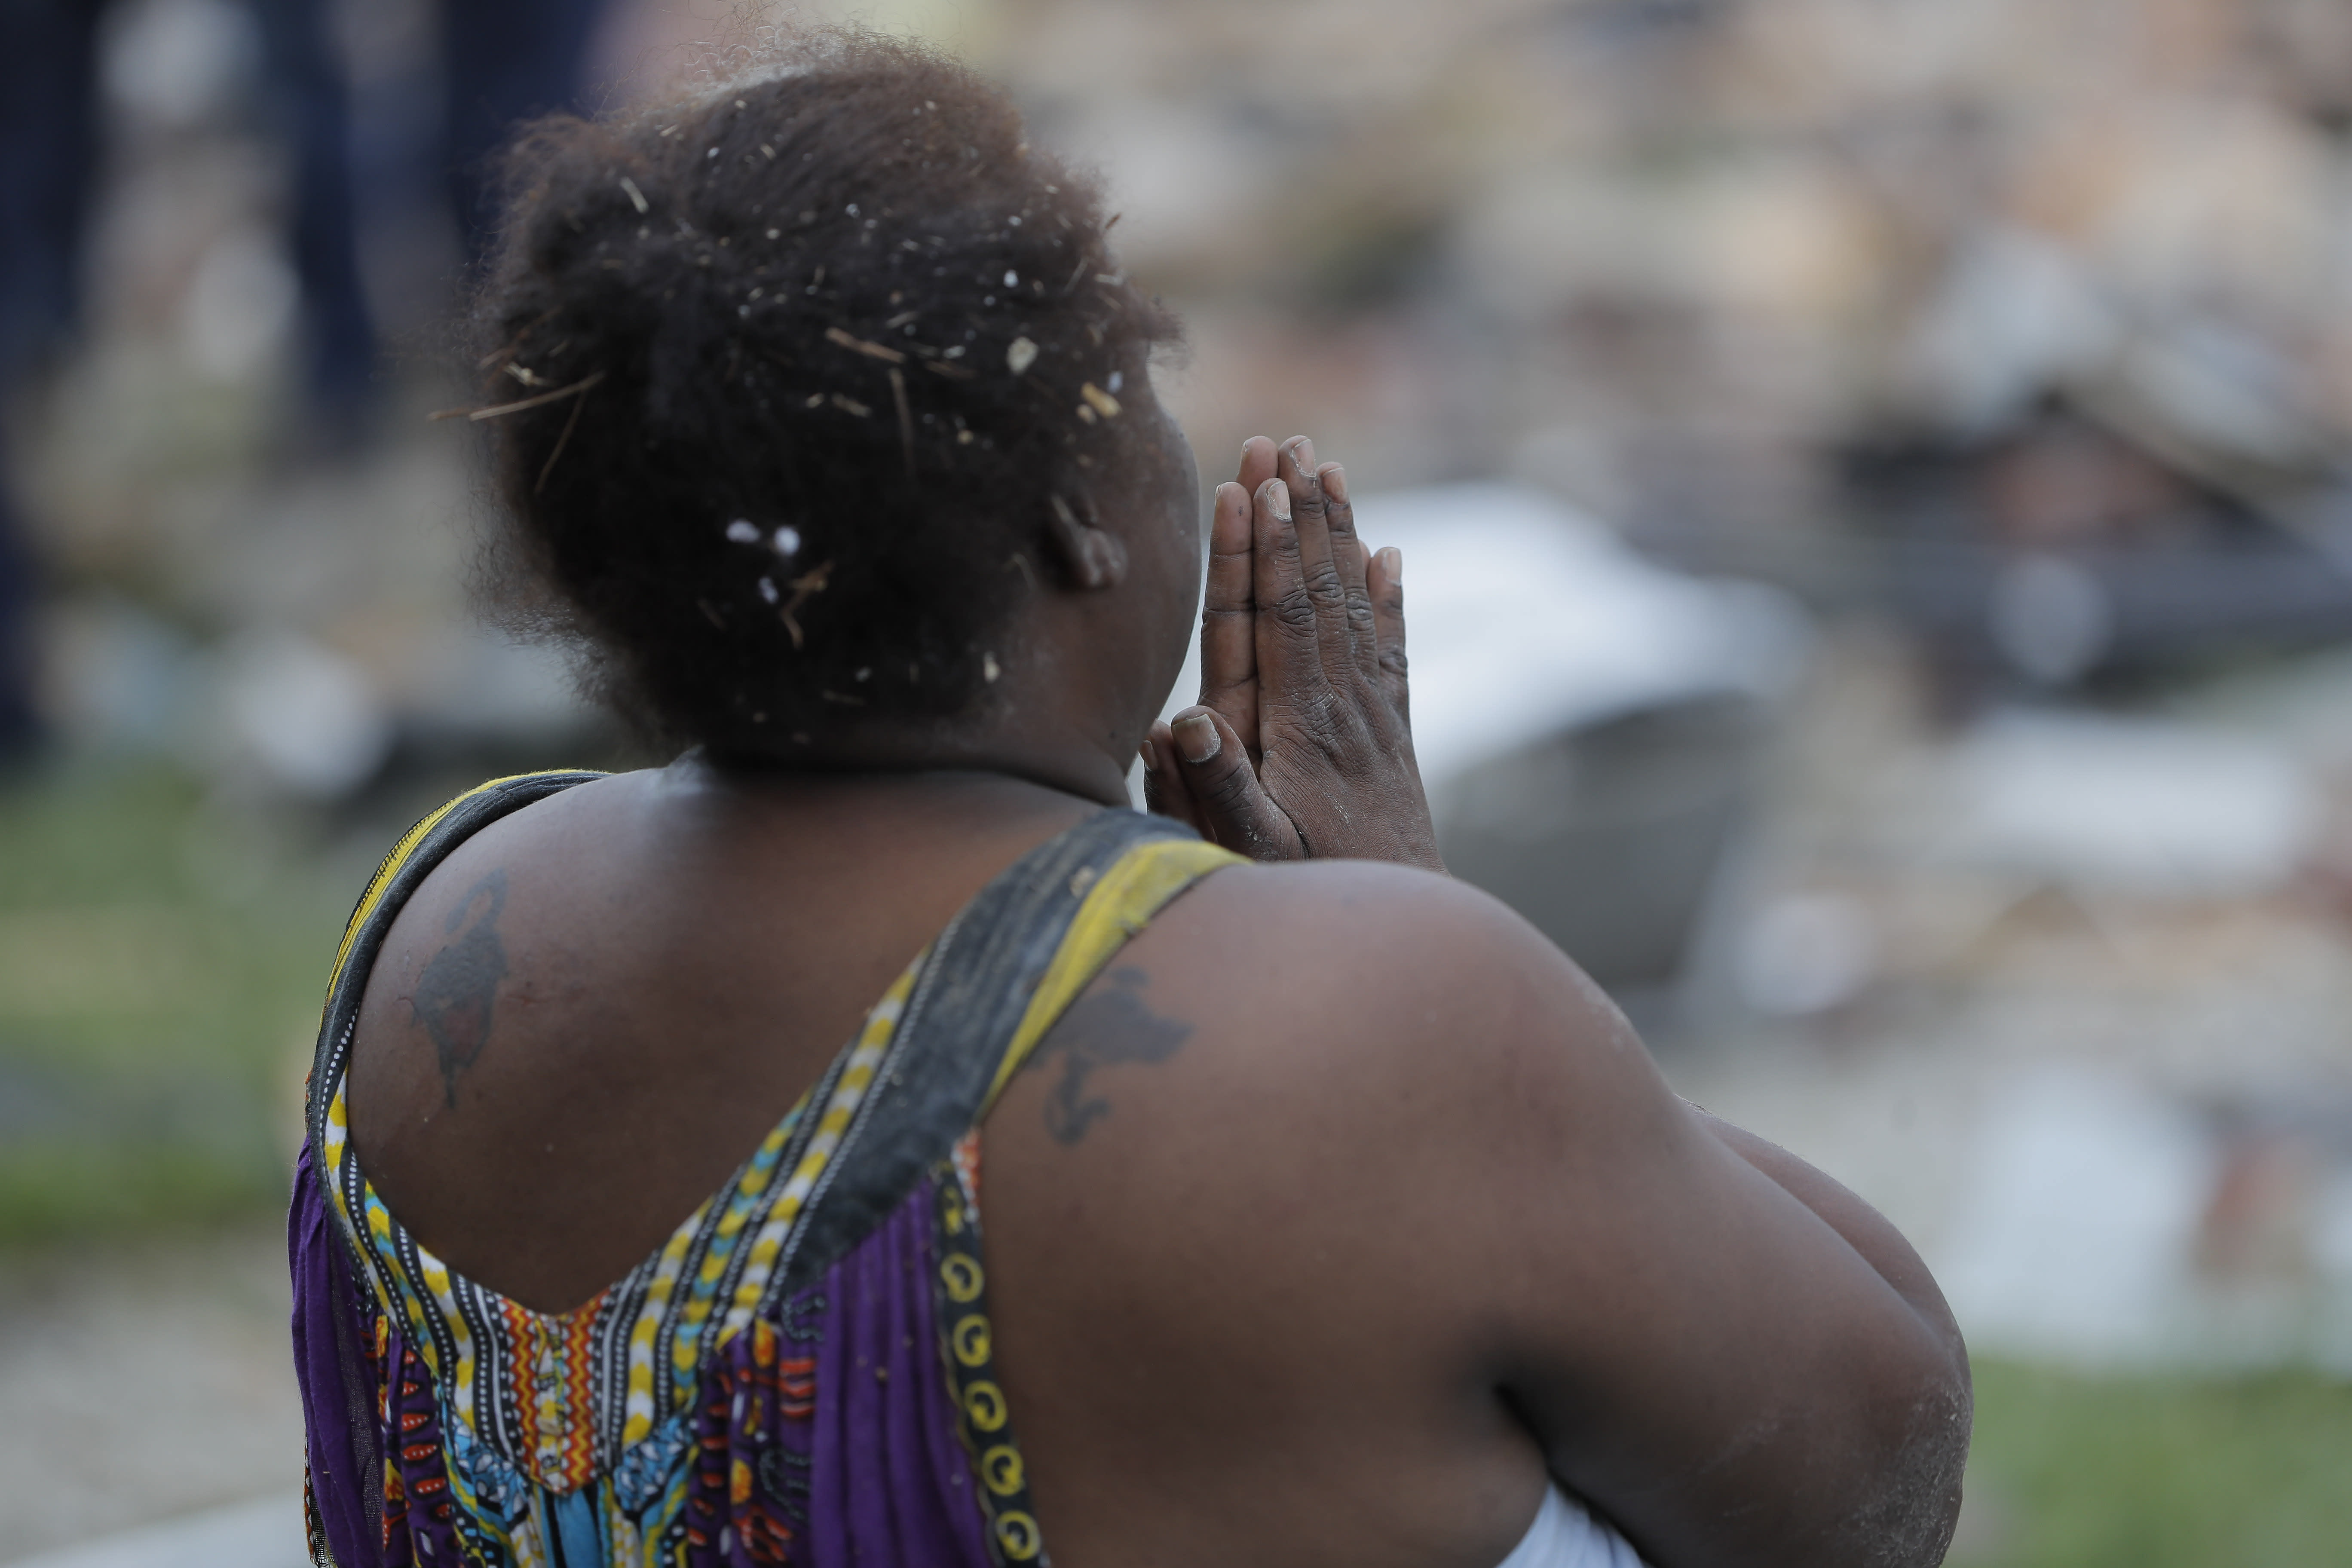 A woman stands in front of a pile of debris after an explosion in Baltimore on Monday, Aug. 10, 2020. Baltimore firefighters say an explosion has levelled several homes in the city. (AP Photo/Julio Cortez)